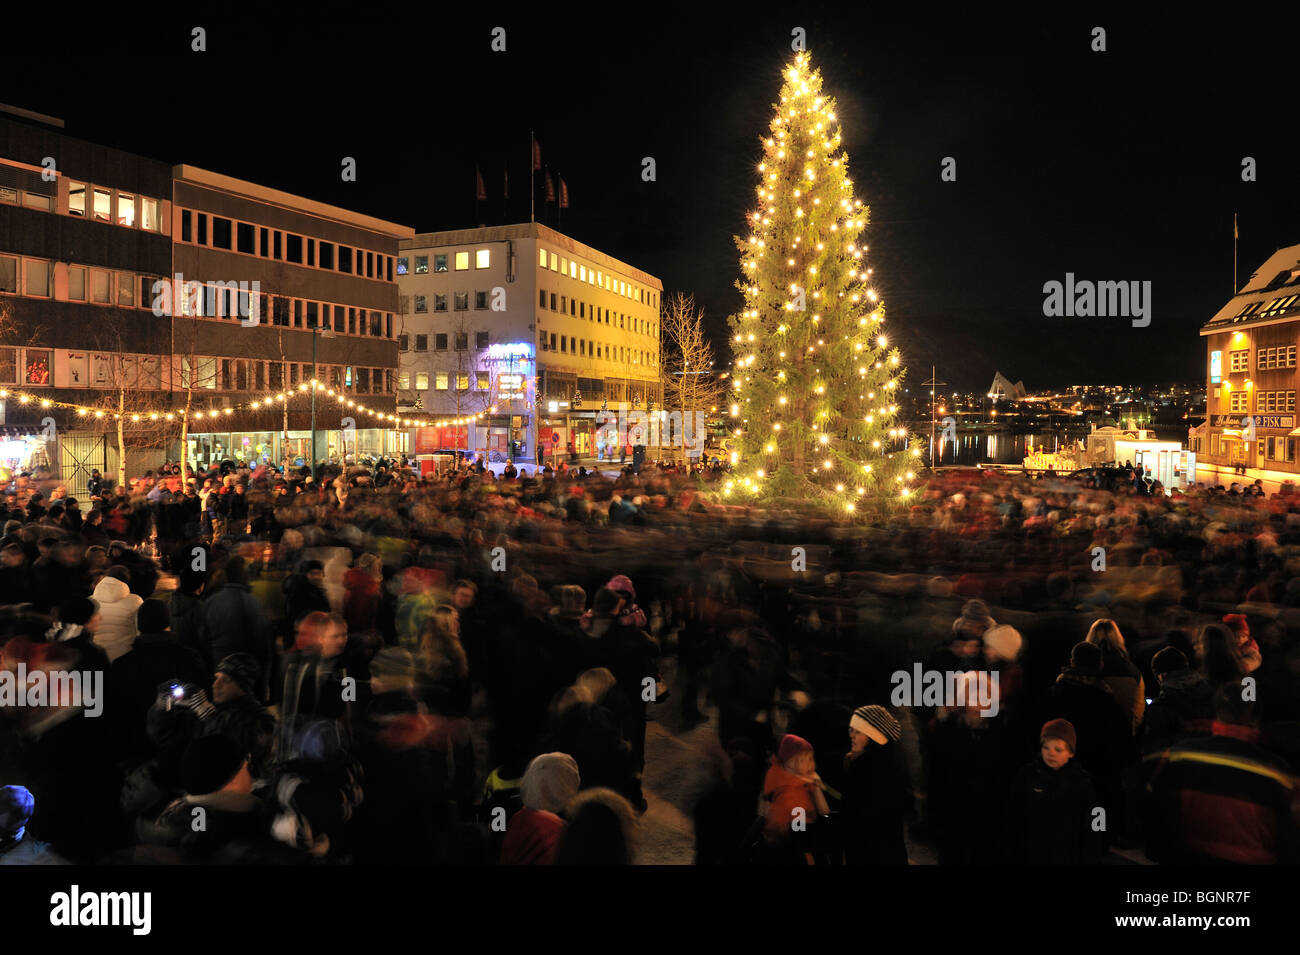 People walking around a Christmas tree in the city square in Tromso, North Norway - Stock Image